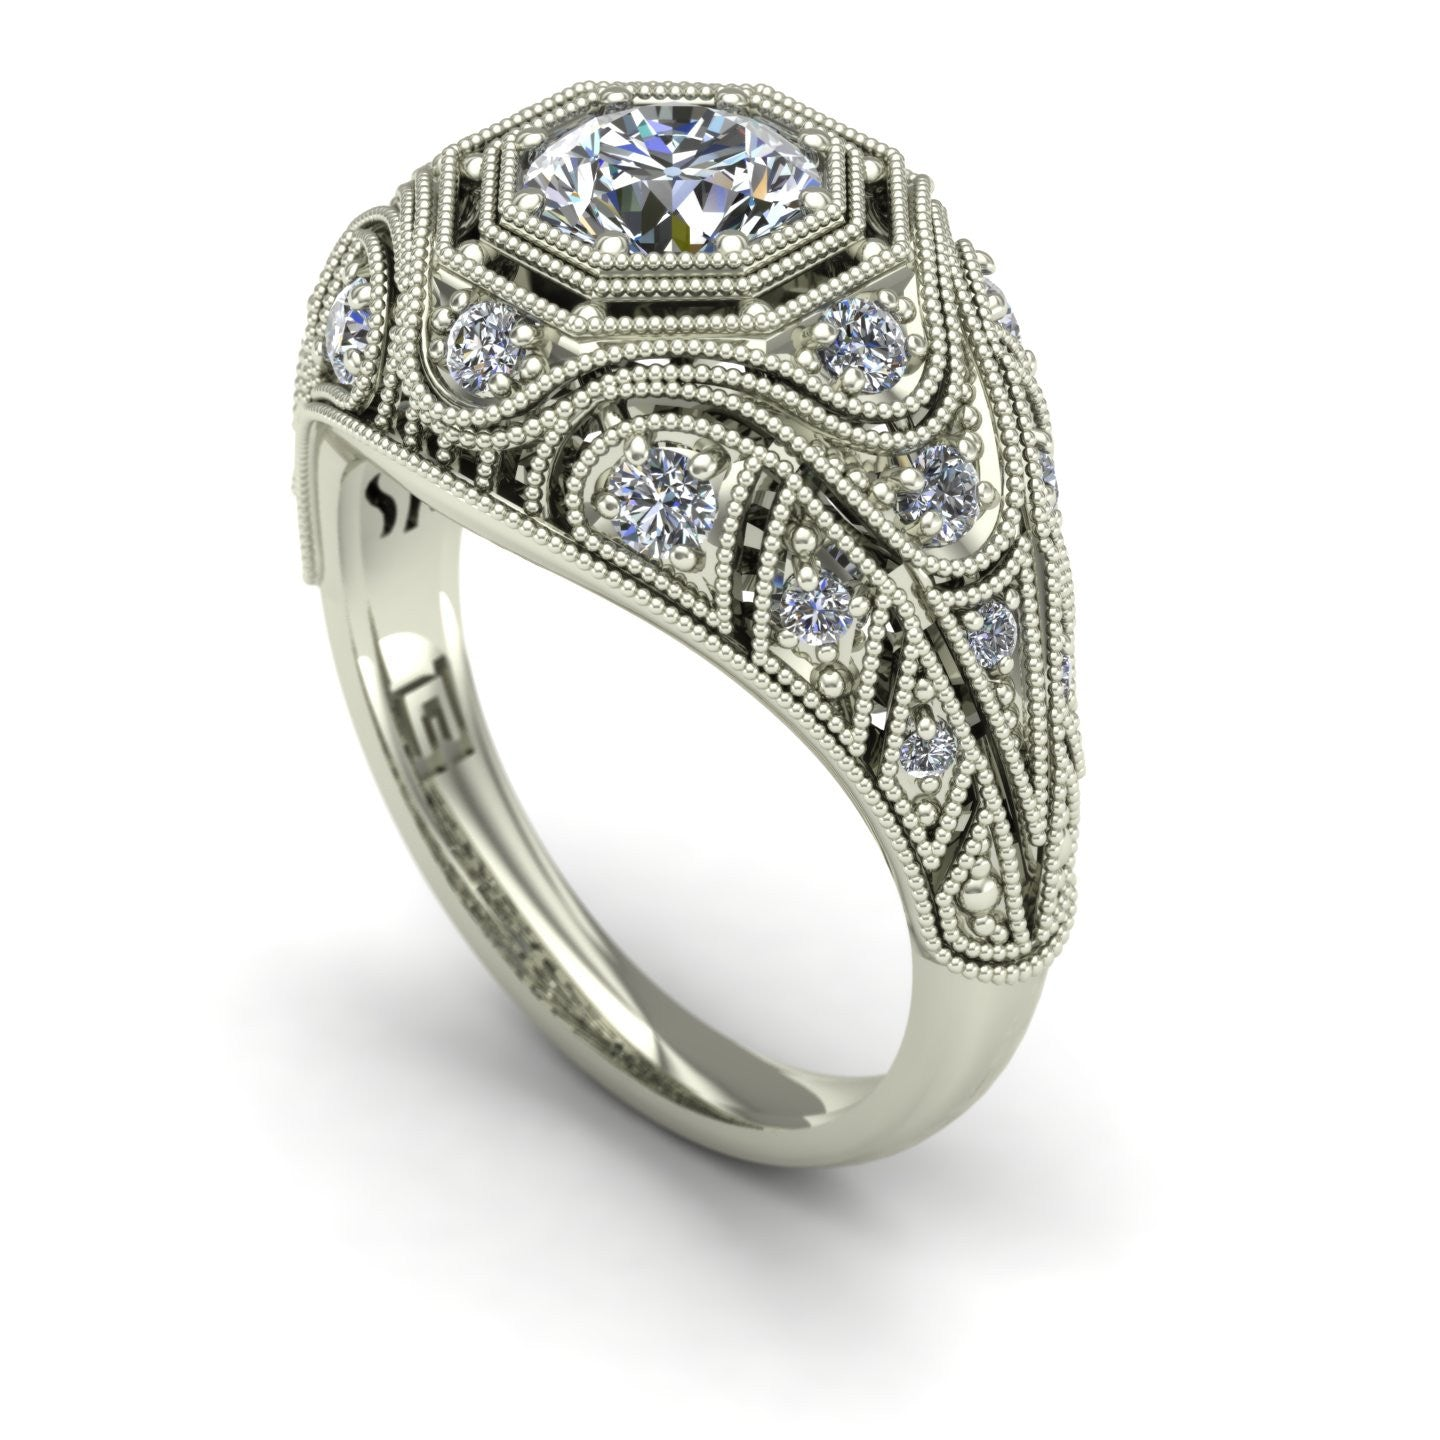 Vintage style diamond ring in 14k white gold